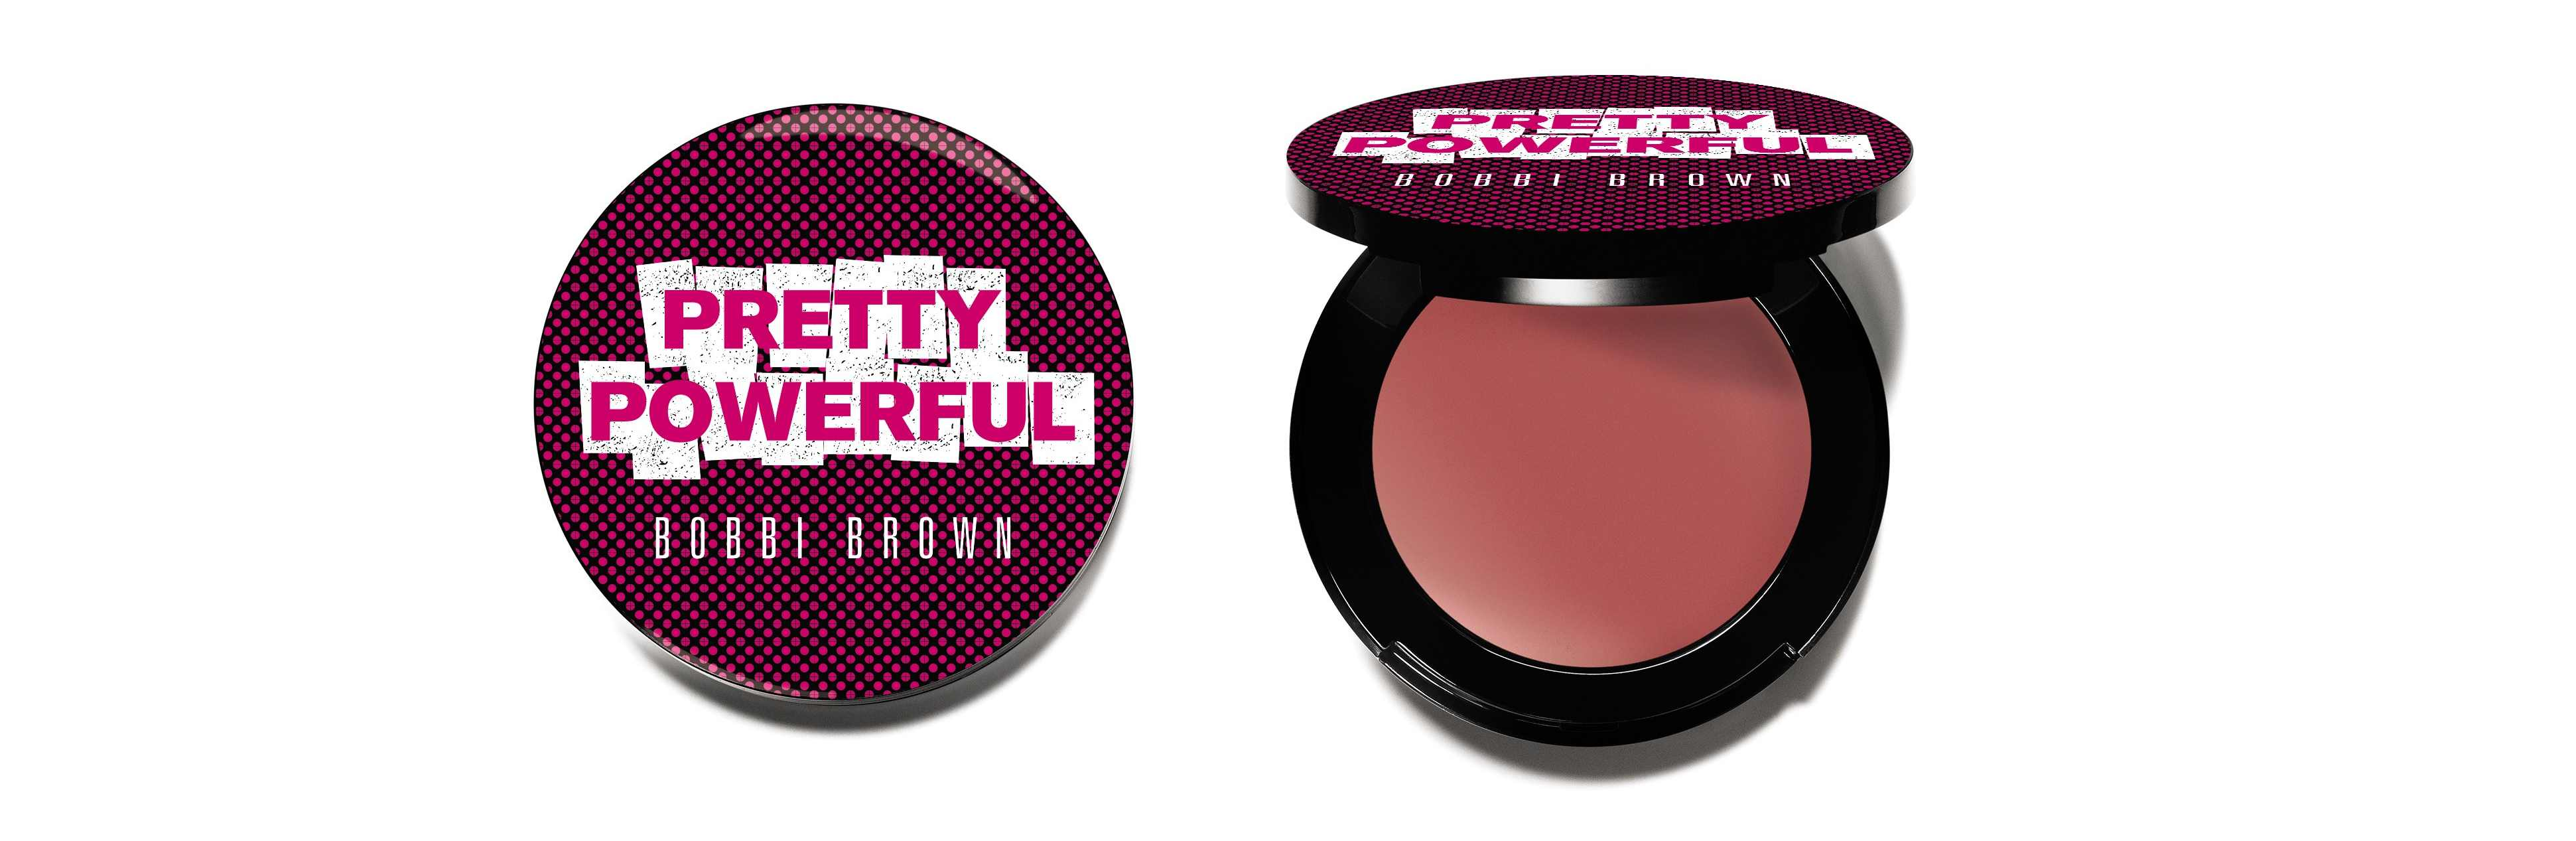 Bobbi Brown Pretty Powerful Pot Rouge